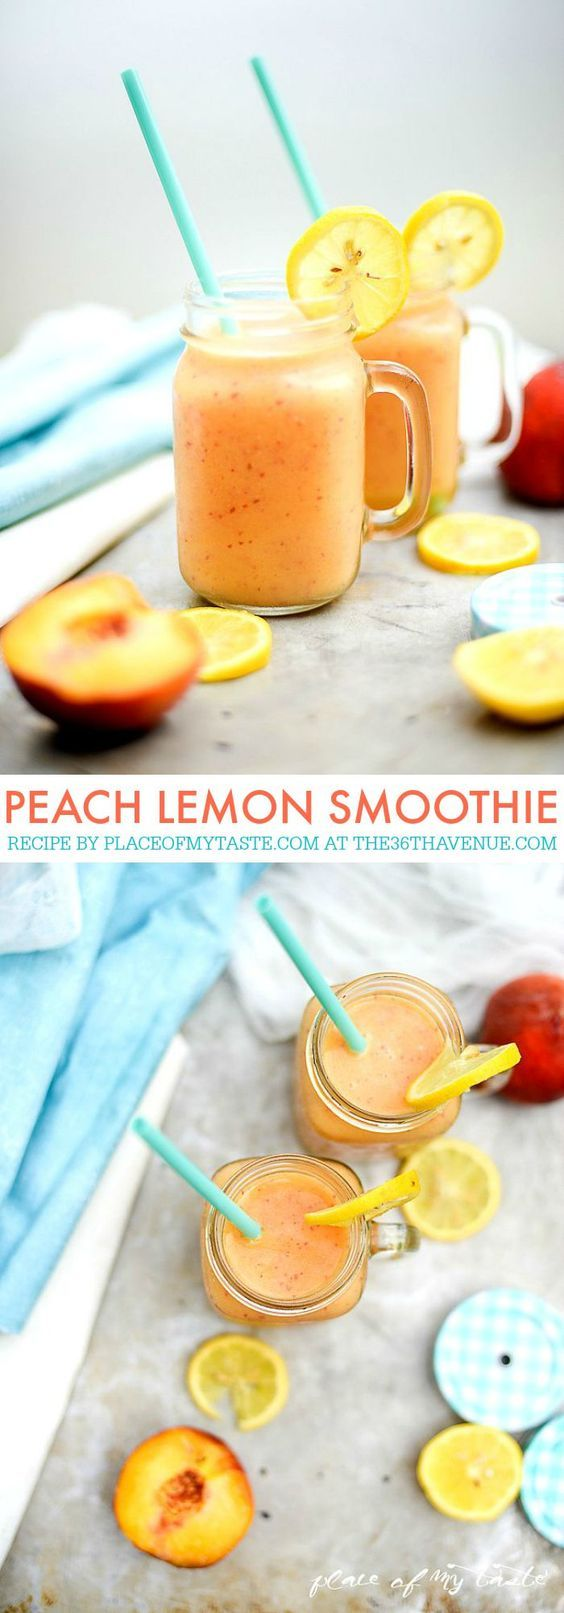 PEACH LEMON SMOOTHIE Recipe by placeofmytaste.com